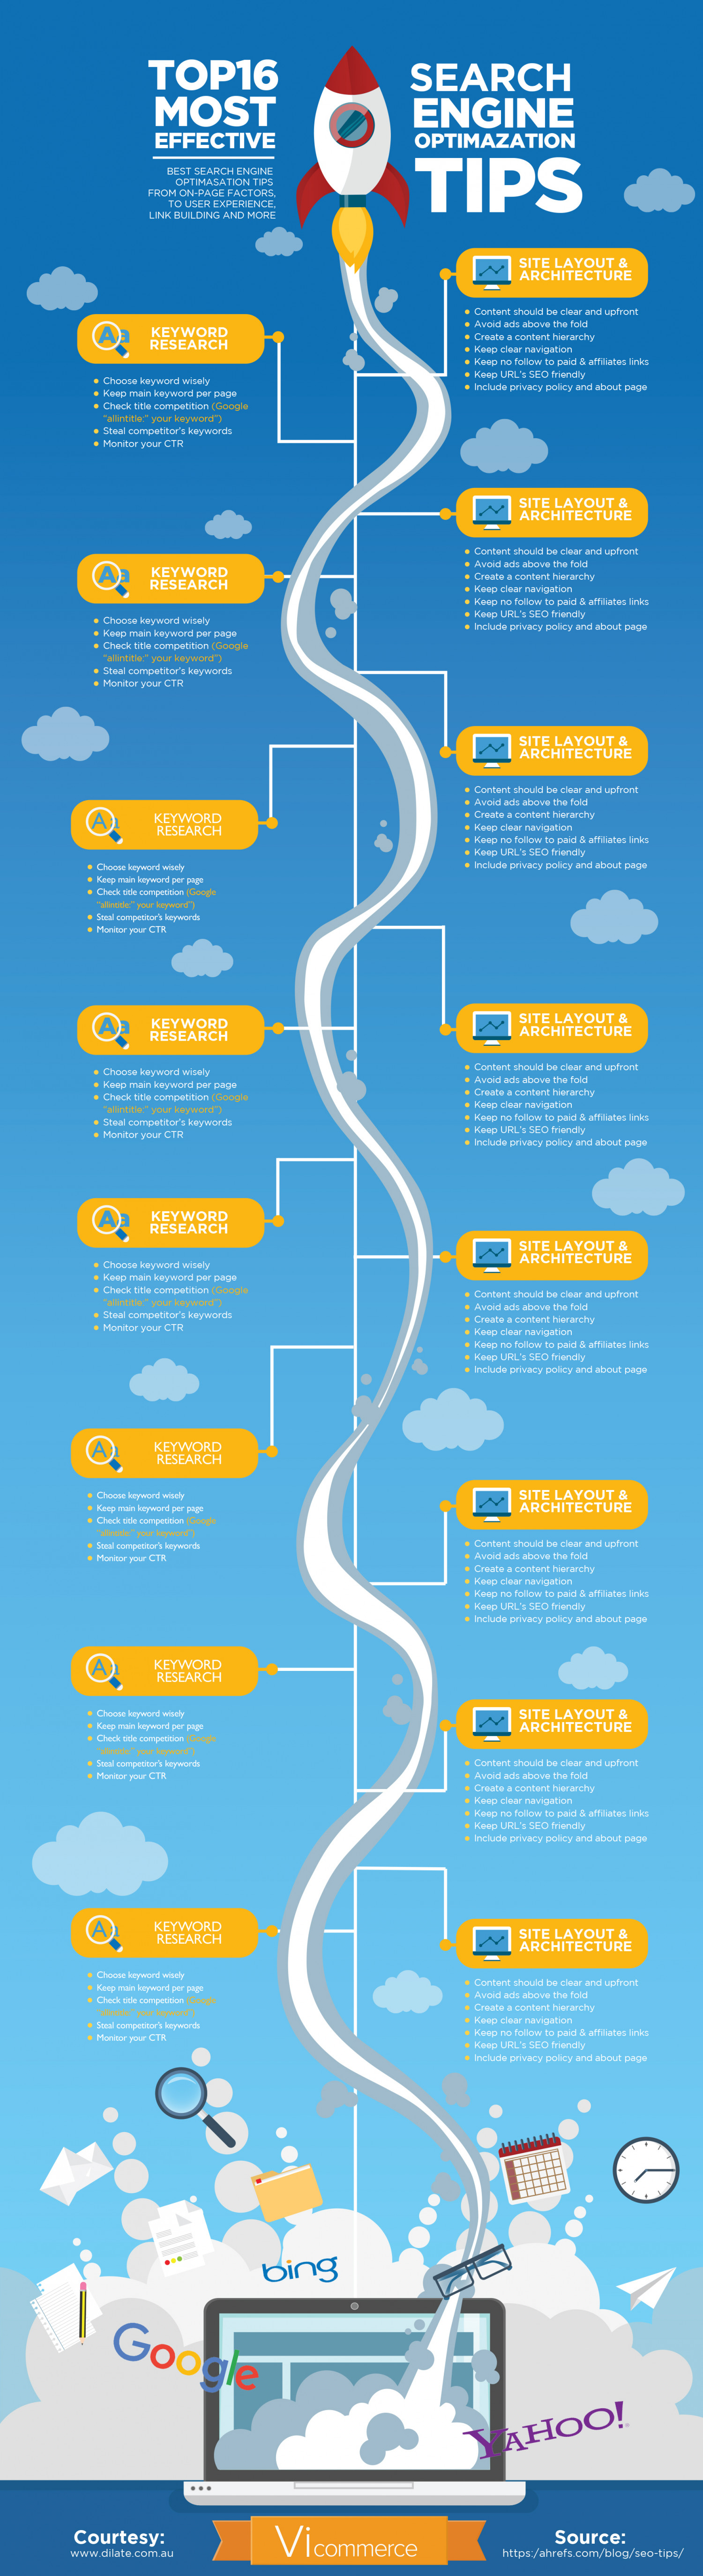 Most Effective SEO Tips - Vi Commerce Infographic